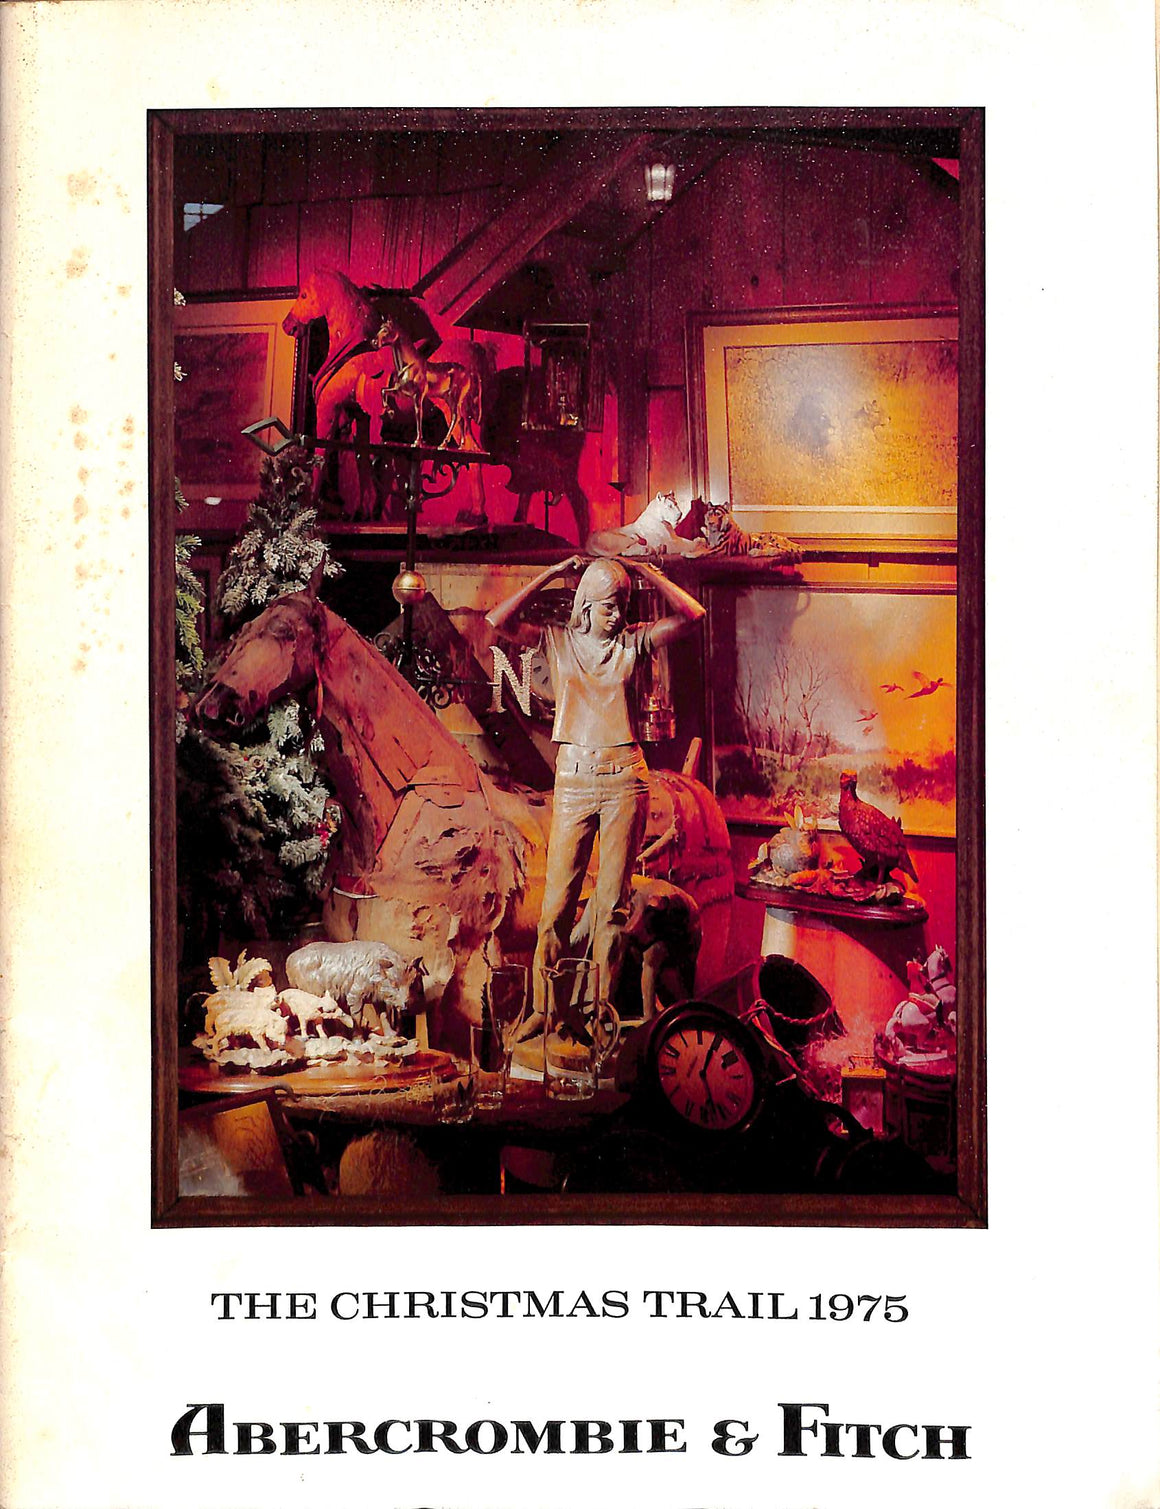 Abercrombie & Fitch The Christmas Trail 1975